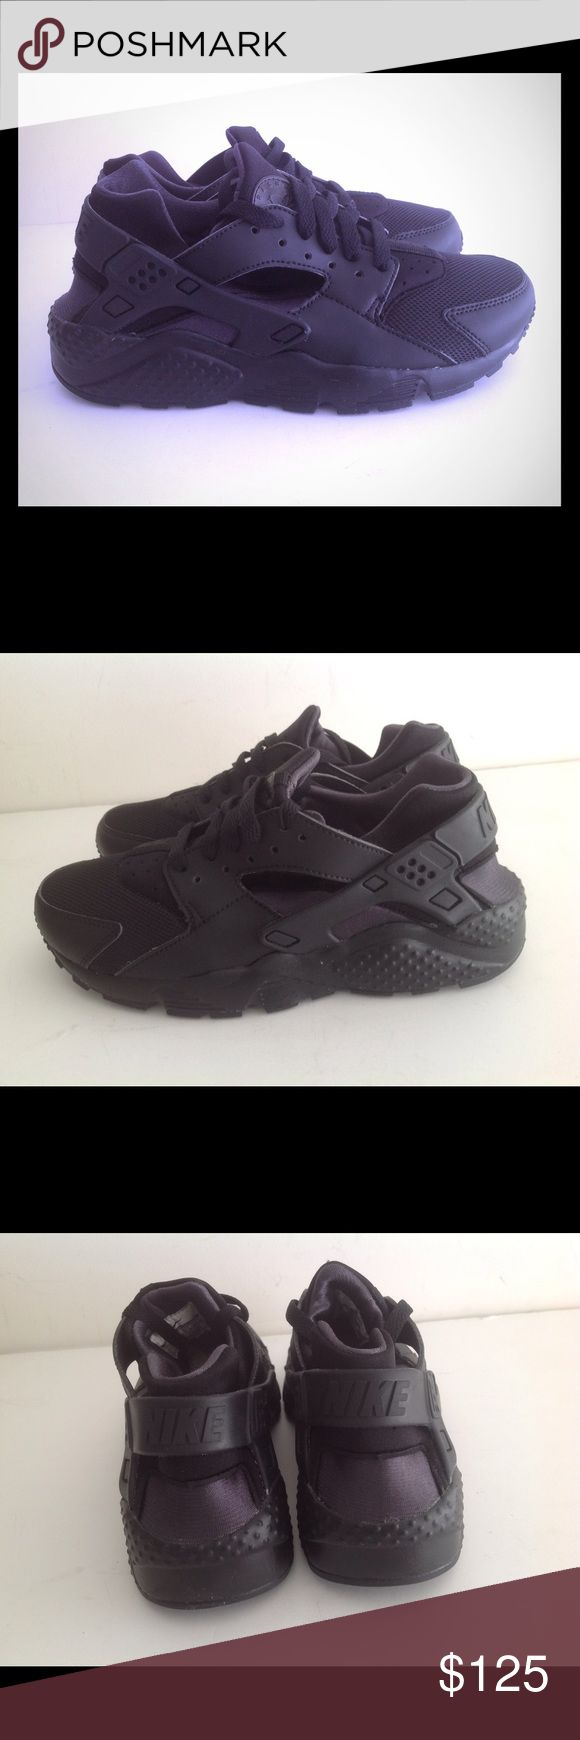 Nike Huarache Run Black Anthracite Brand new with box size 5y,6y women size 6.5, 7 No trades Nike Shoes Sneakers